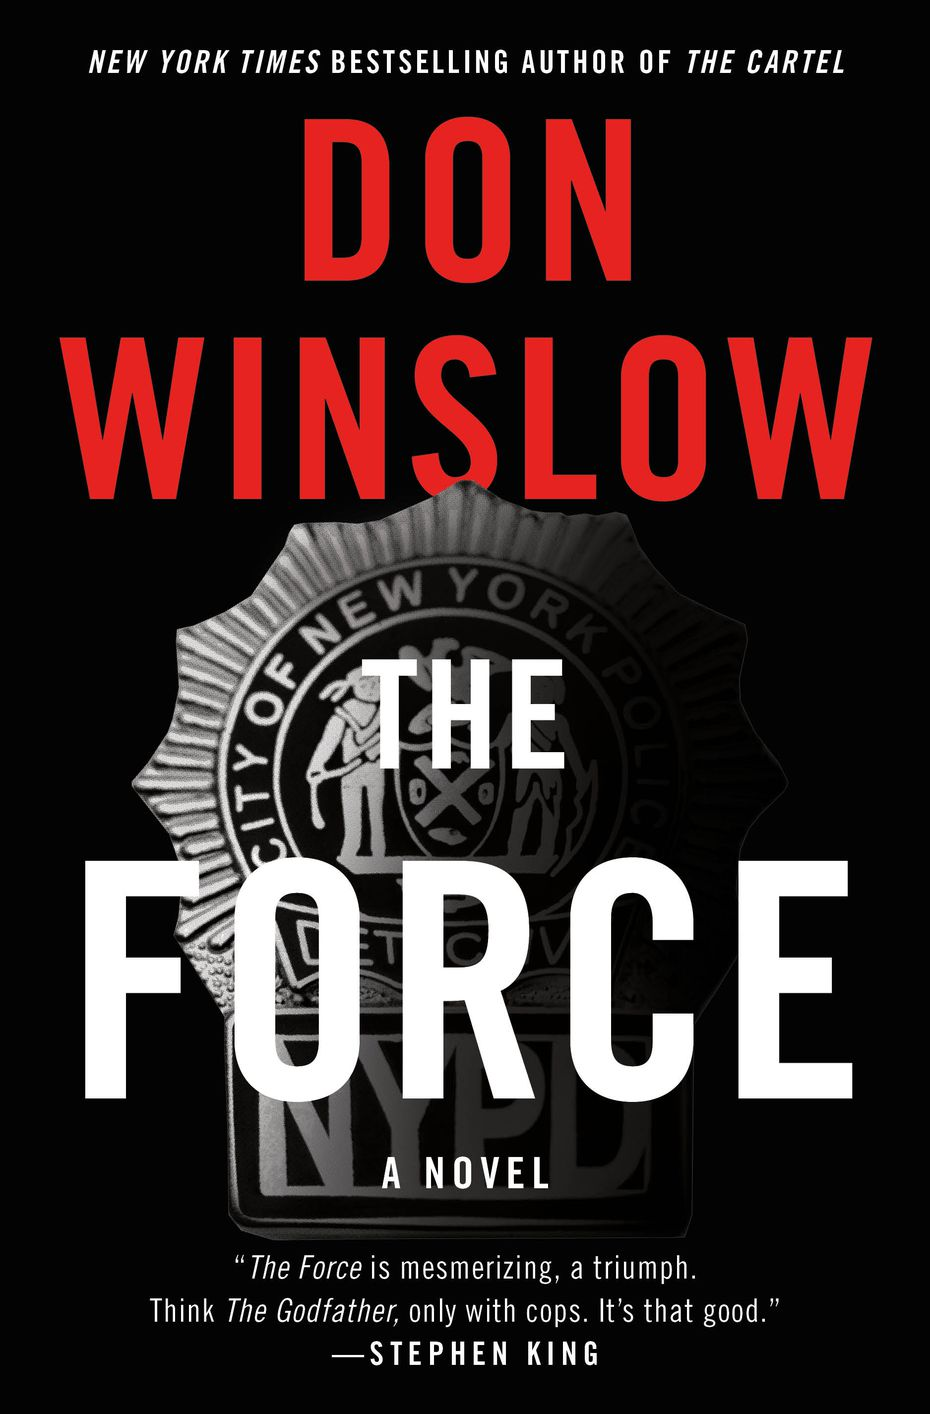 Don Winslow's  The Force